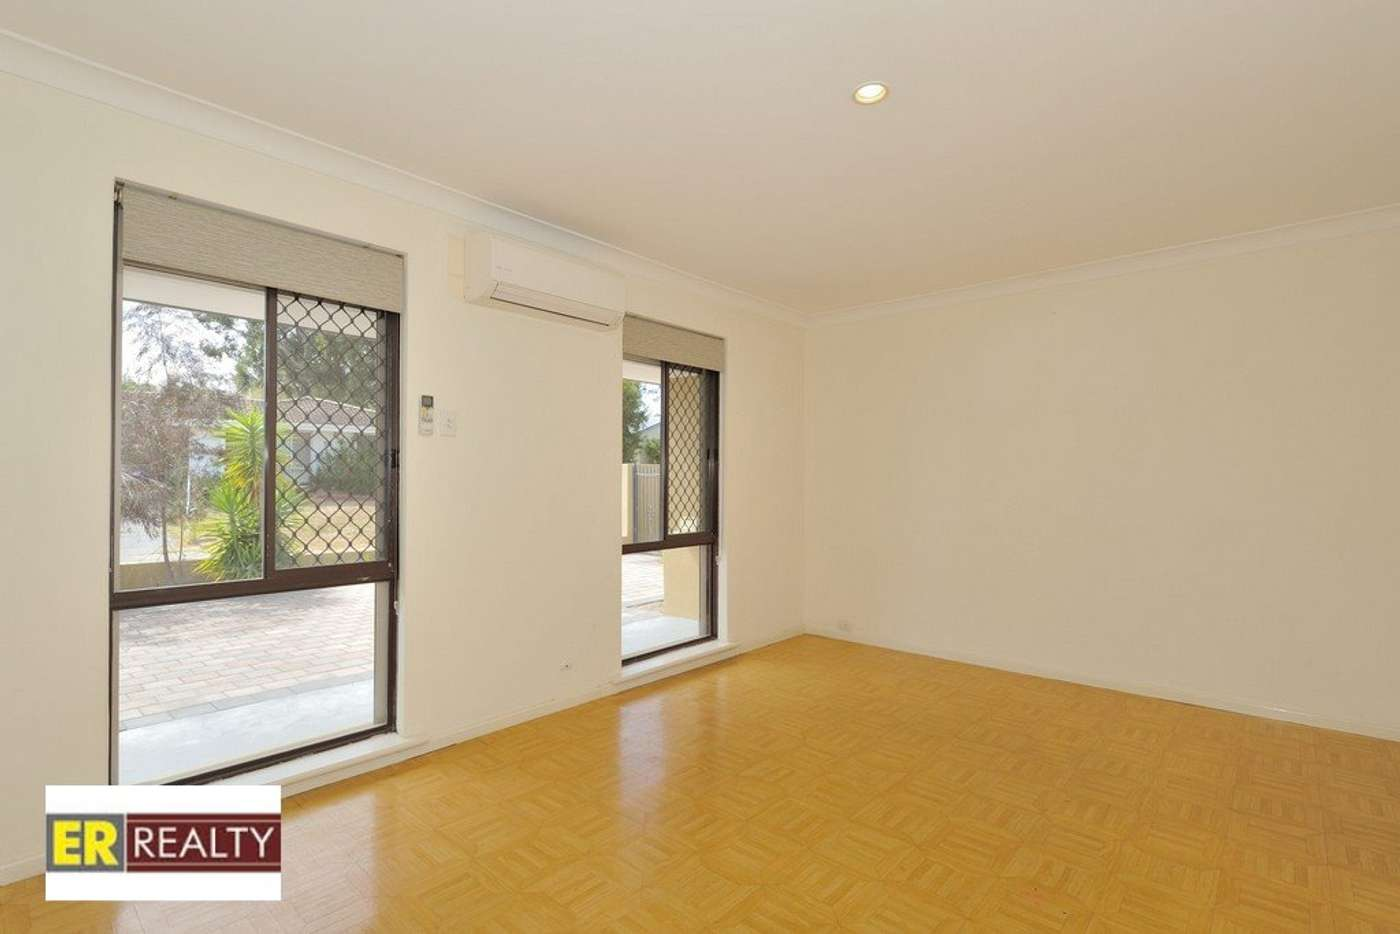 Sixth view of Homely house listing, 24 Miller Street, Bellevue WA 6056